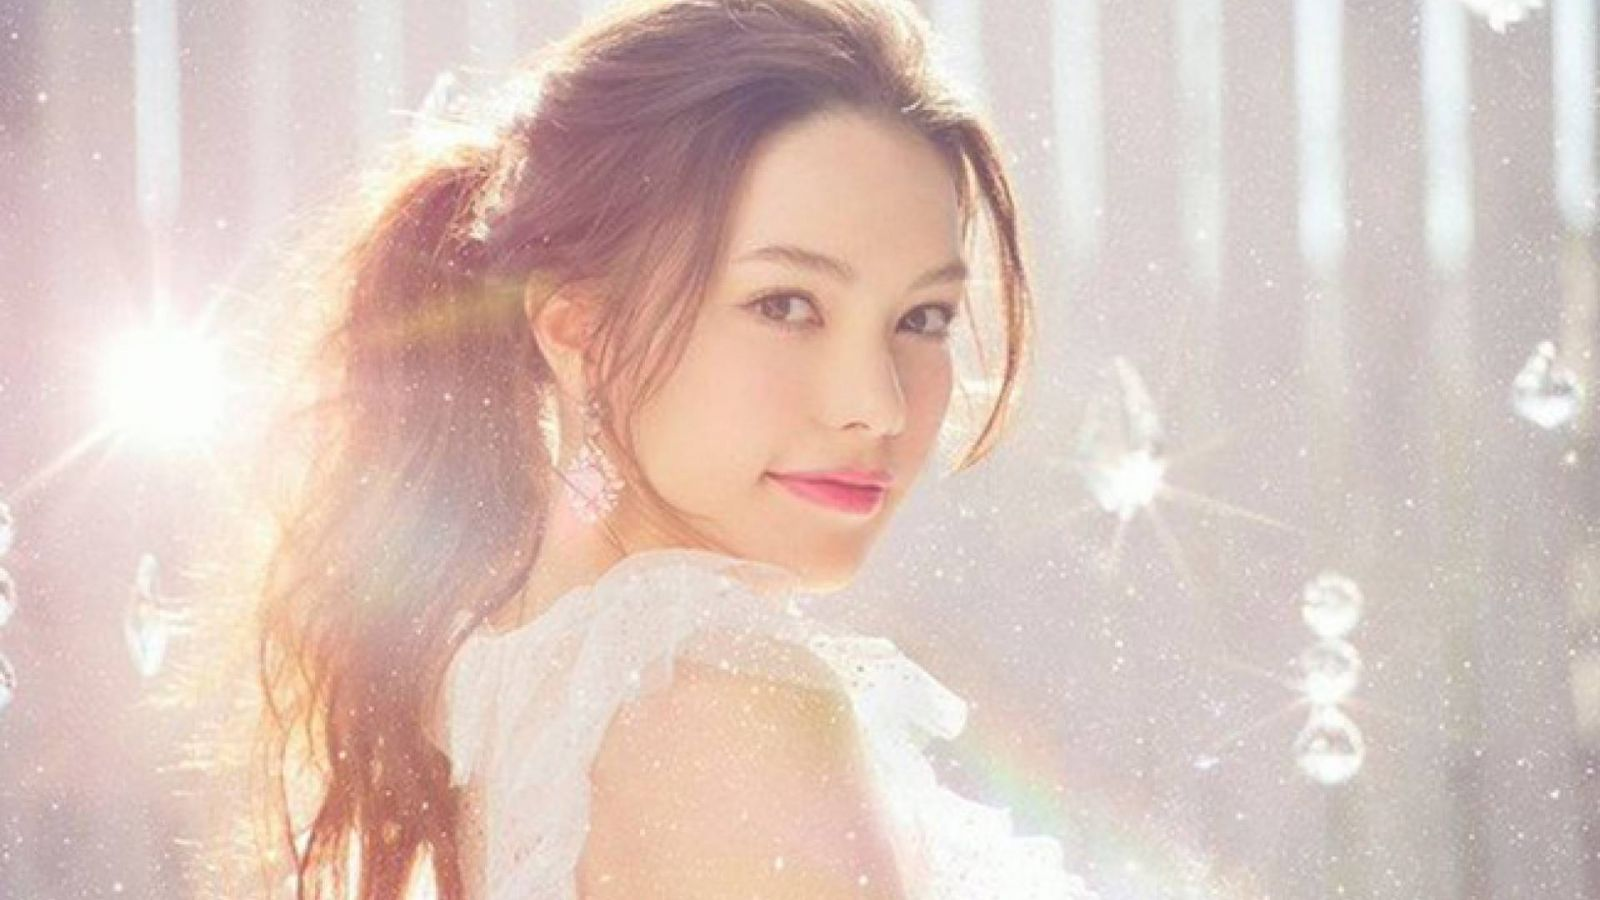 Nuevo single de Rei Yasuda © Sony Music Labels, Inc. All Rights Reserved